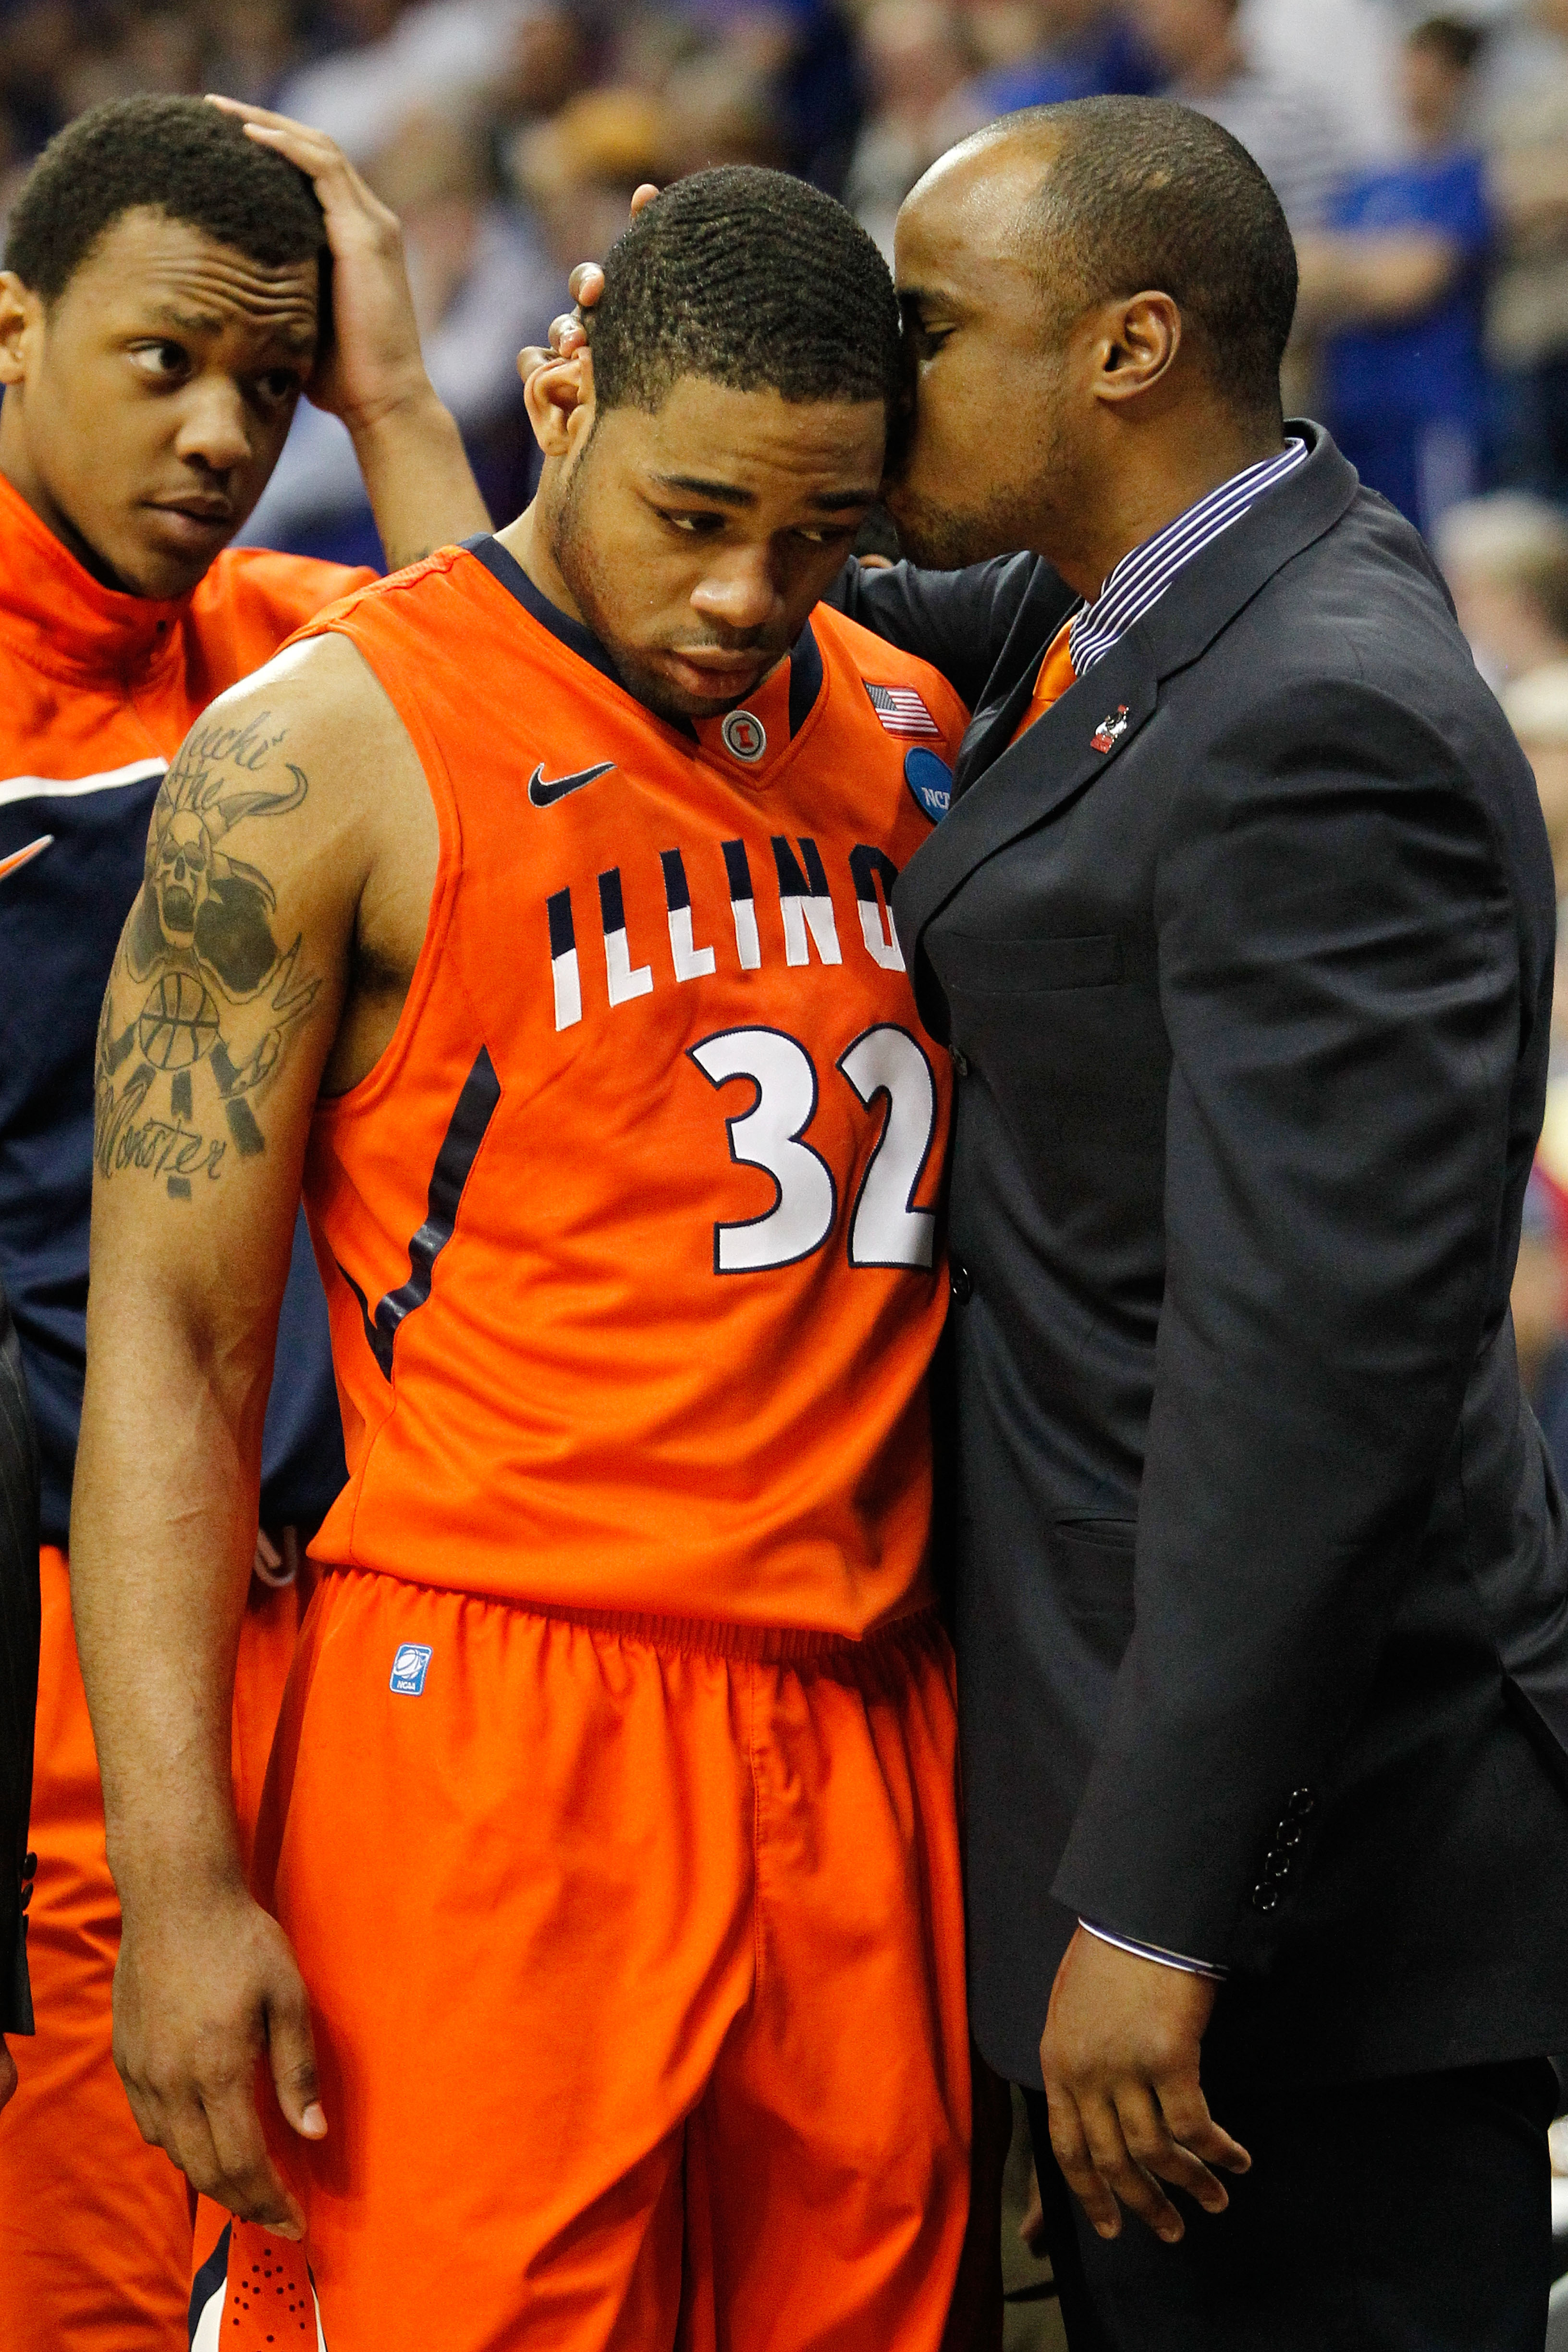 TULSA, OK - MARCH 20:  Demetri McCamey #32 of the Illinois Fighting Illini walks off the court in the final moments of their 59-73 loss to the Kansas Jayhawks during the third round of the 2011 NCAA men's basketball tournament at BOK Center on March 20, 2